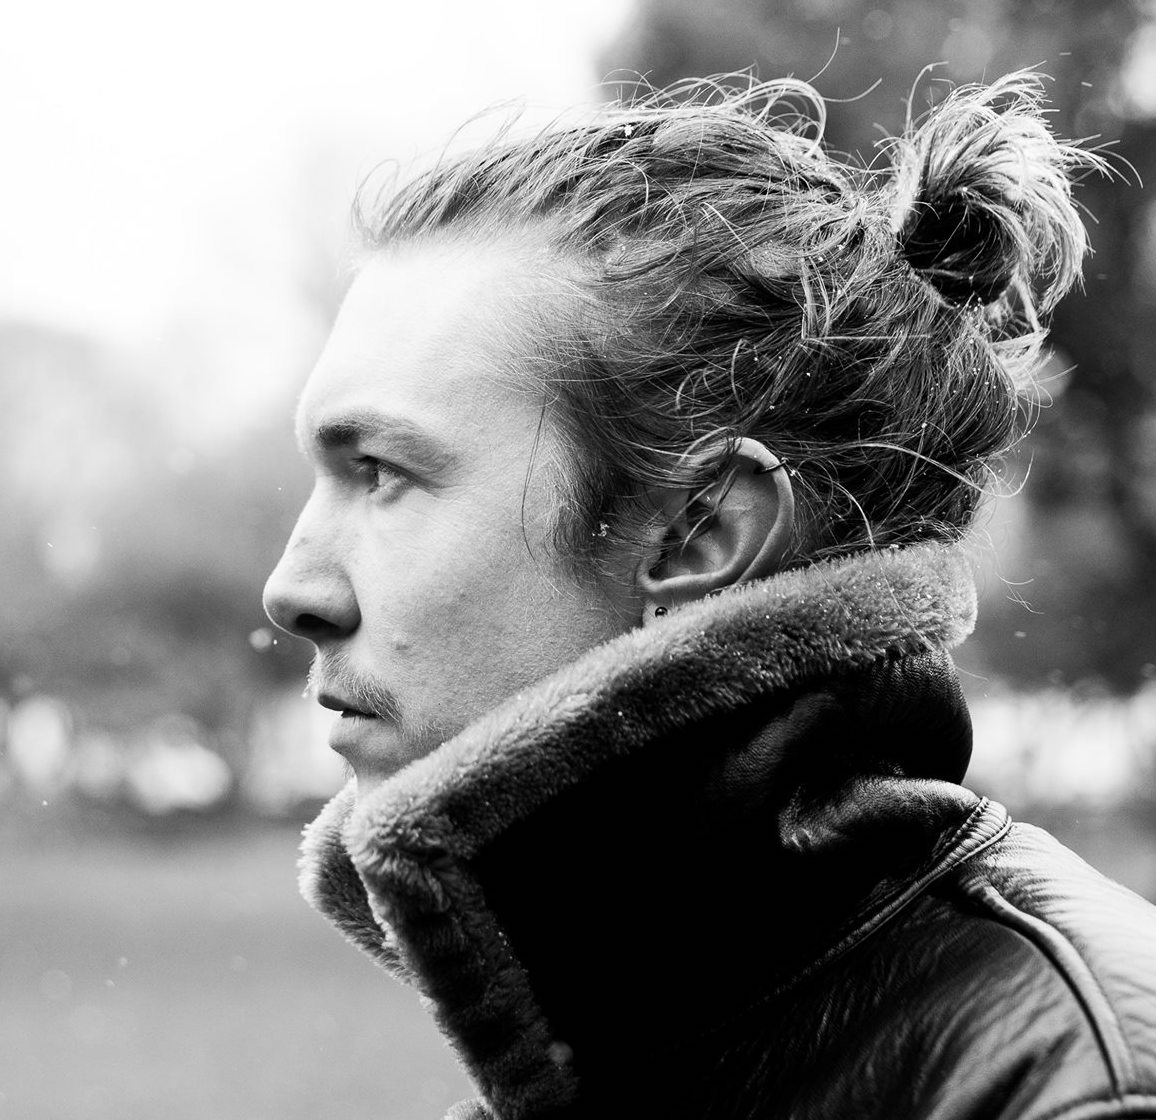 Remayn: a white man with long hair tied back in a bun, wearing a thick coat